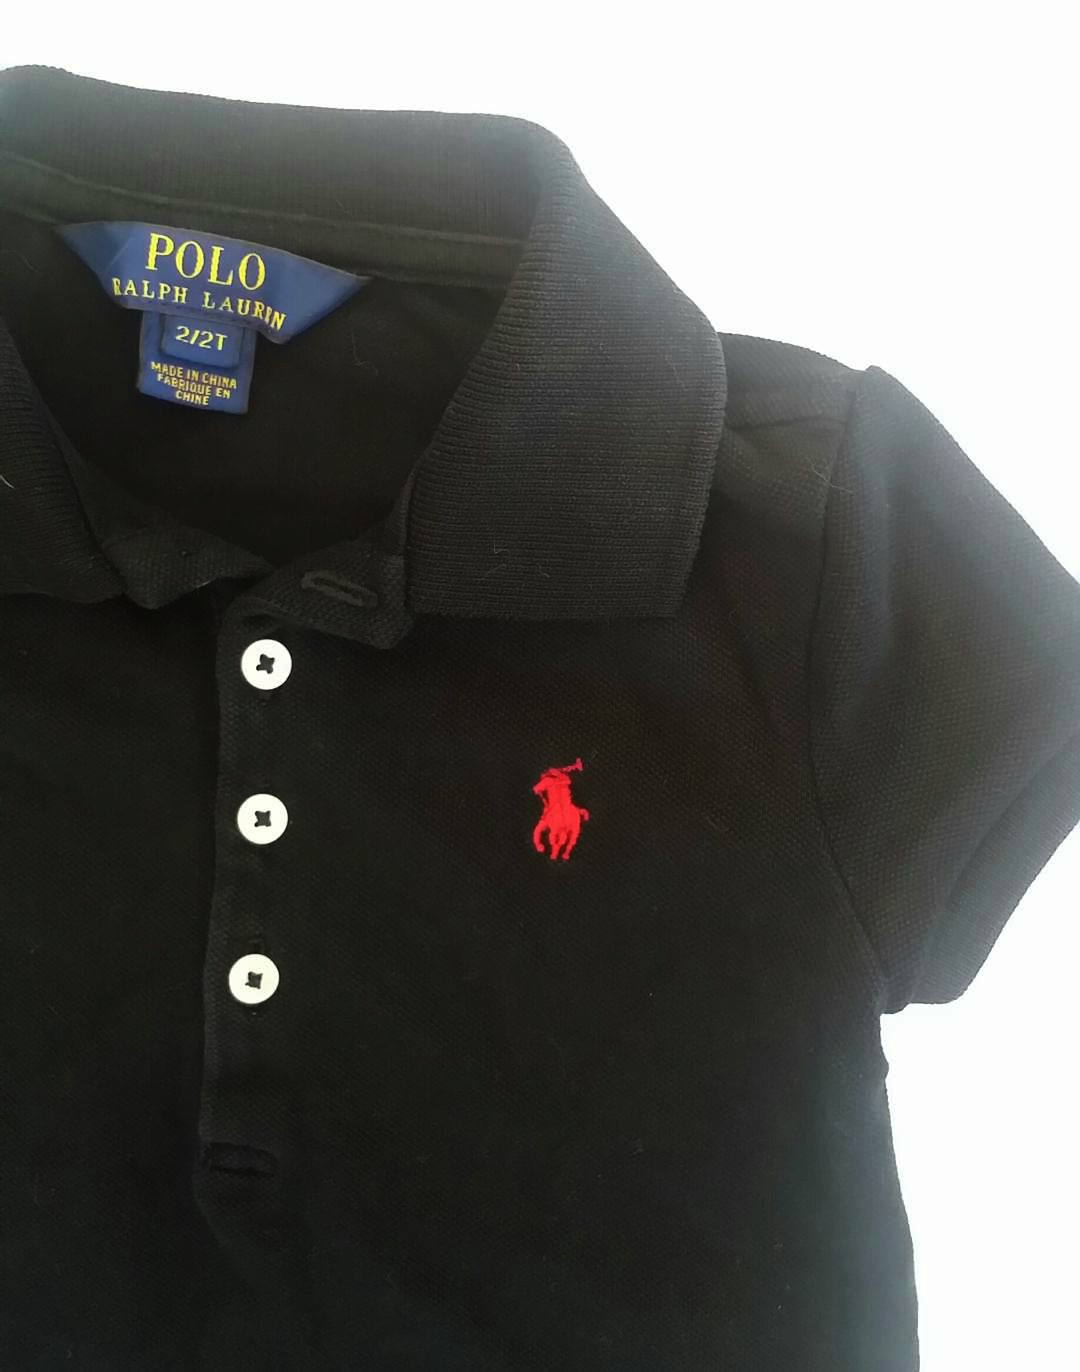 Ralph-Lauren--2-YEARS-Polo-Shirt_2126616B.jpg